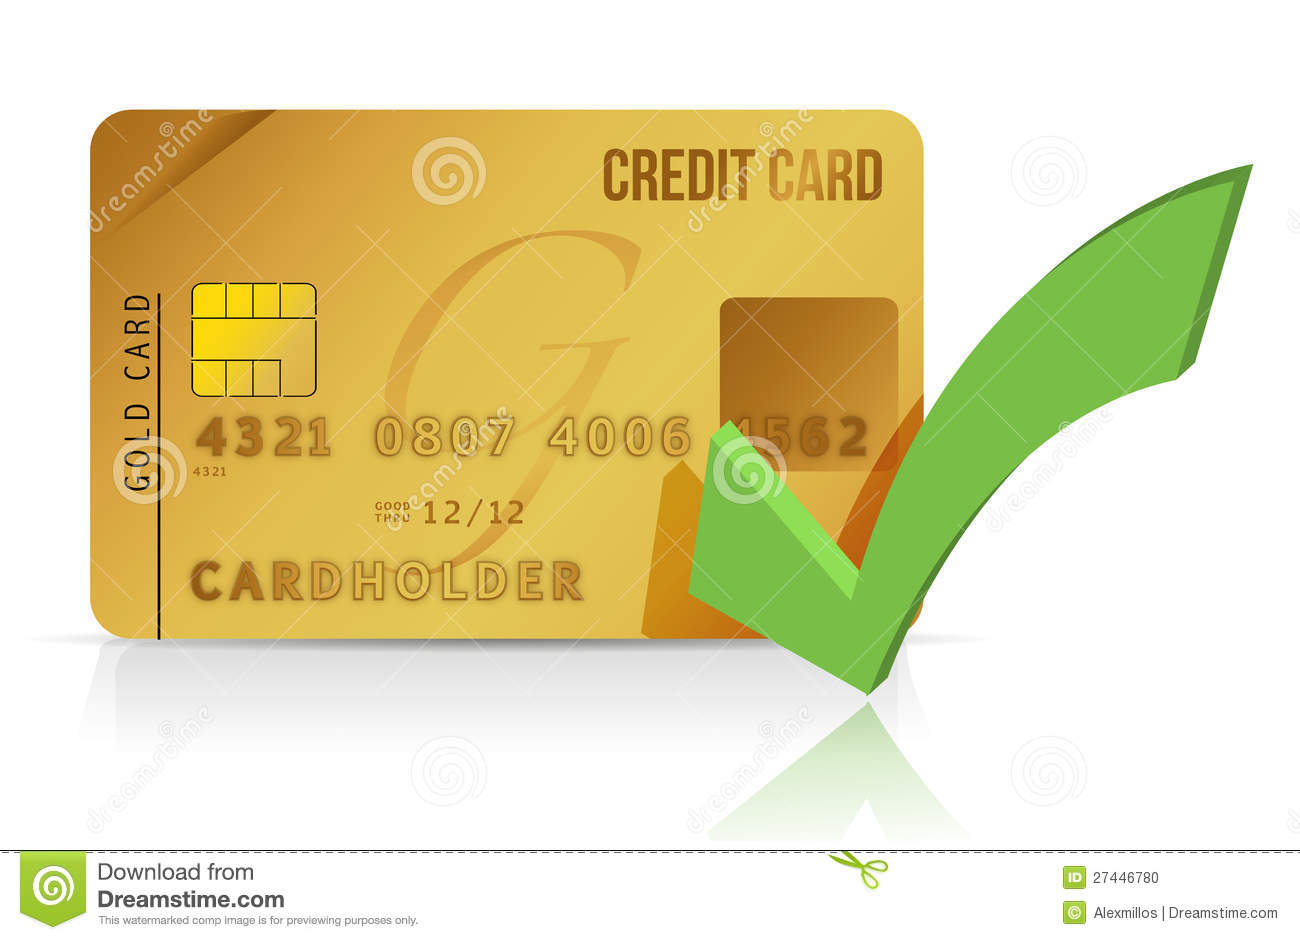 Credit card eligibility checker. Answer a few questions to see if you are likely to be approved for a credit card; Reduce the chances of being rejected for credit cards and potentially damaging.